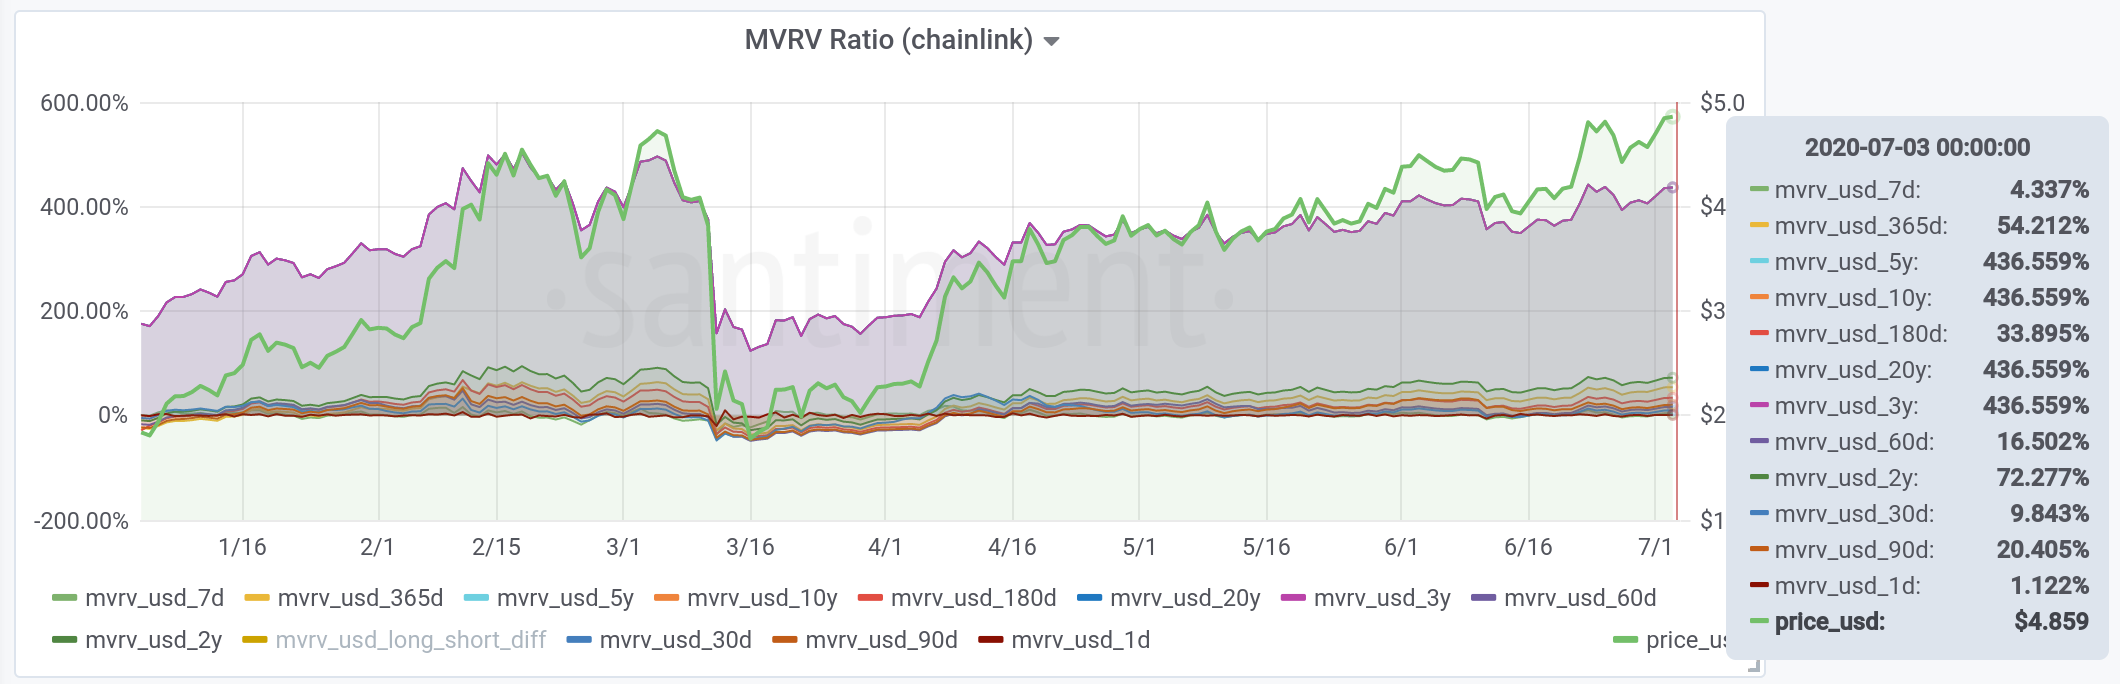 MVRV ratio Chainlink